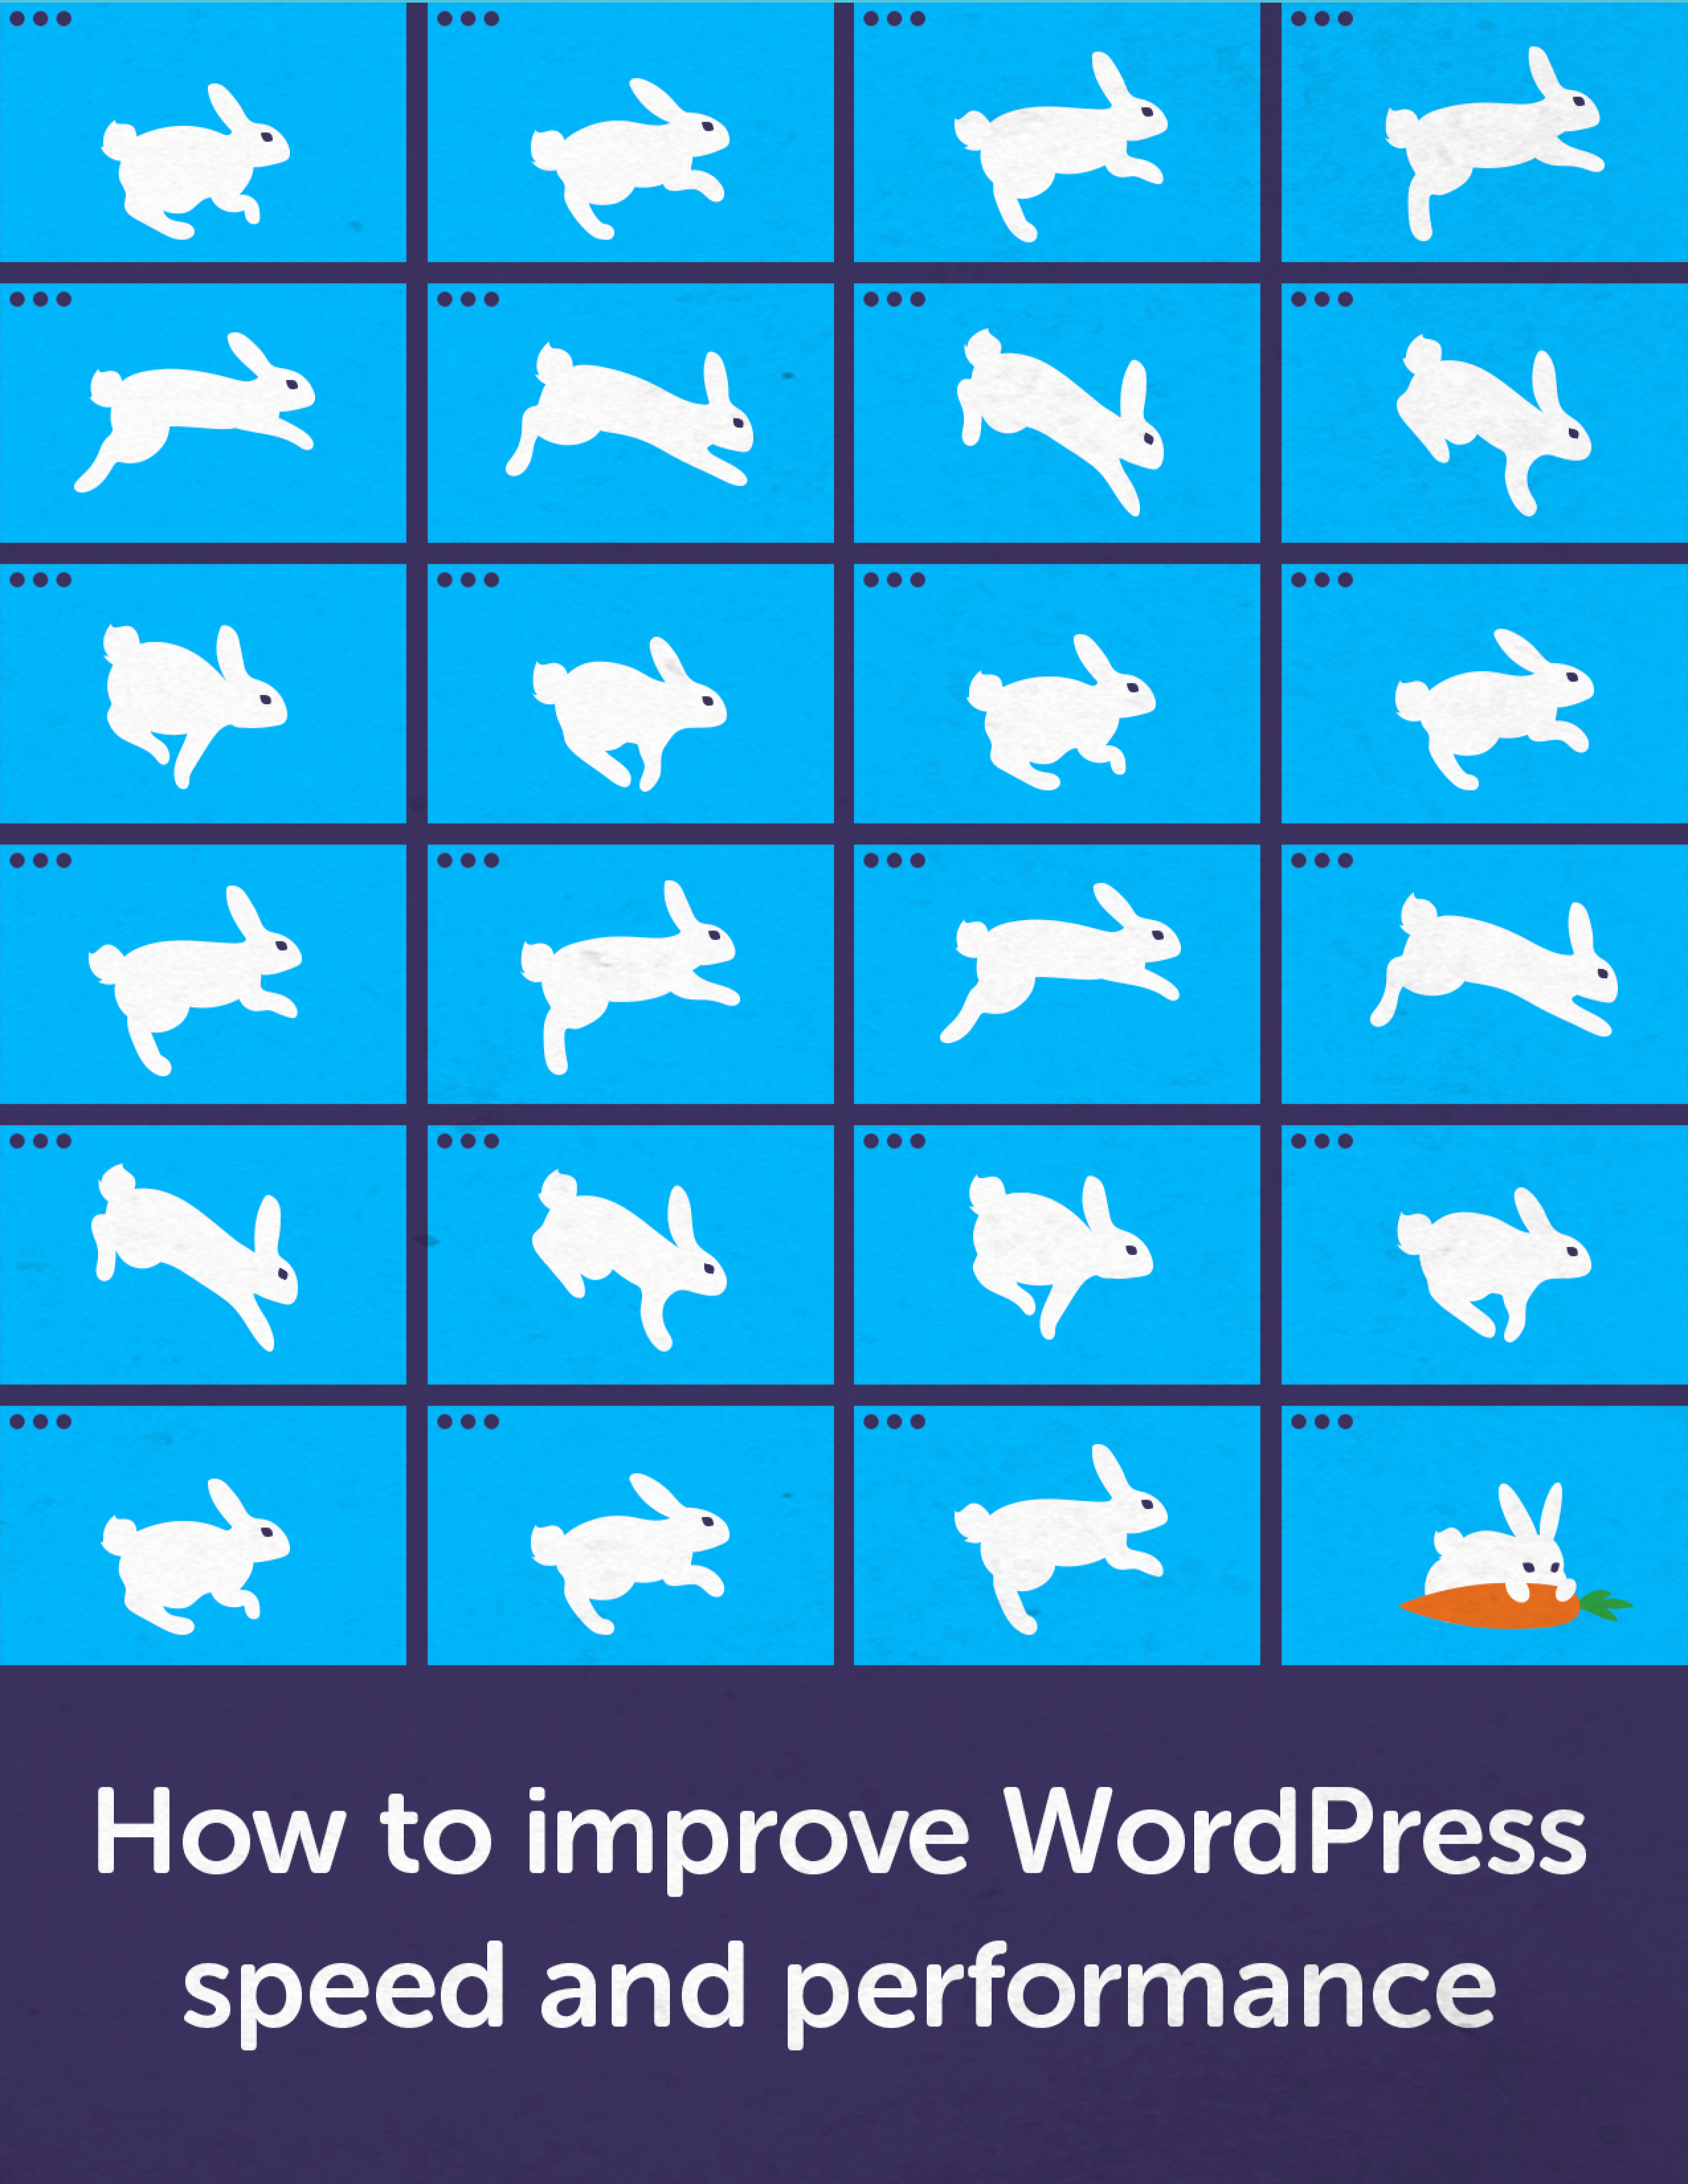 increase-wordpress-speed-performance-cover.png